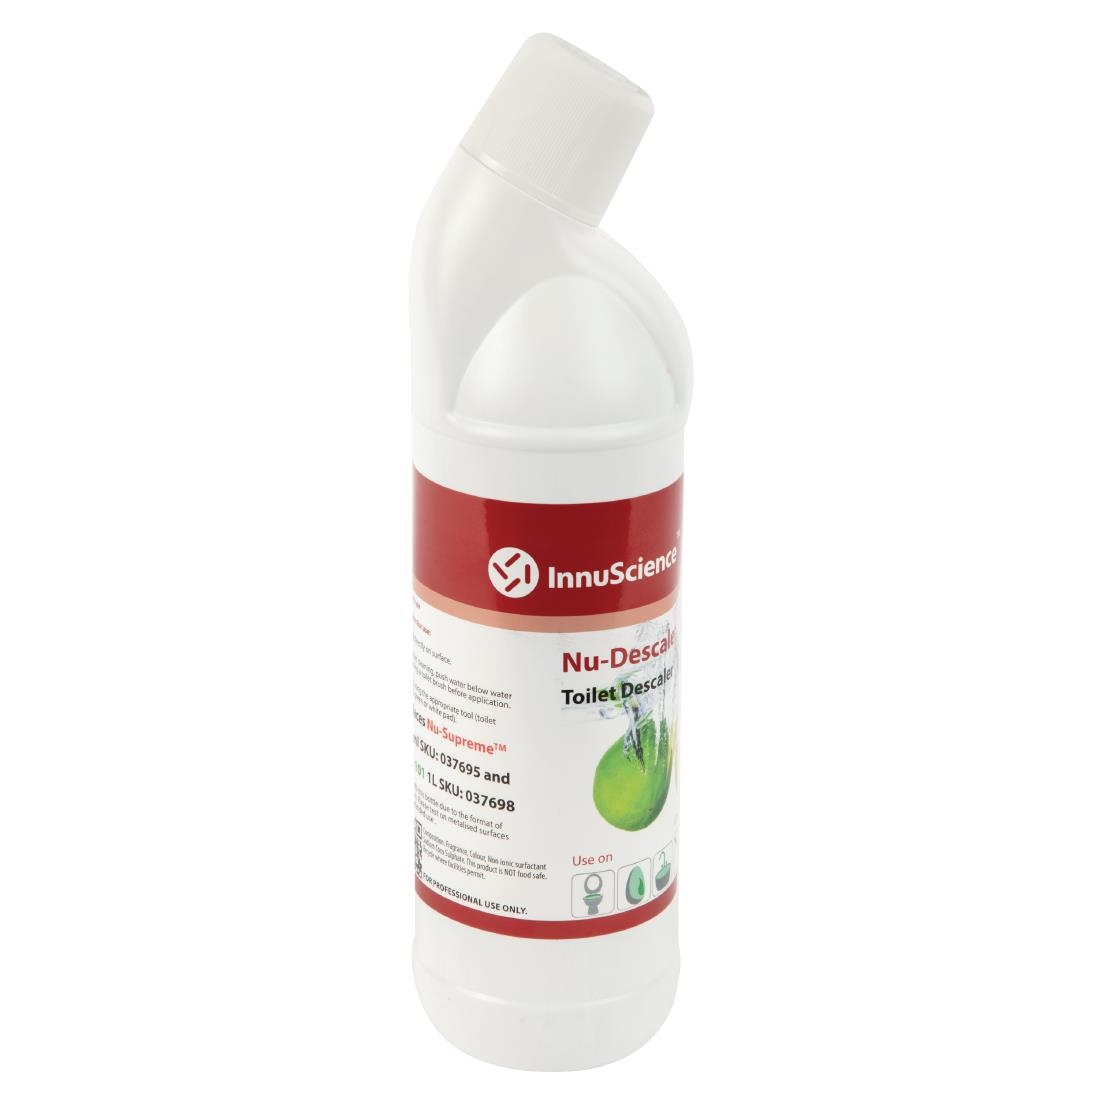 Image of InnuScience Nu-Descaler Toilet Cleaner and Descaler Ready To Use 1Ltr (12 Pack) Pack of 12